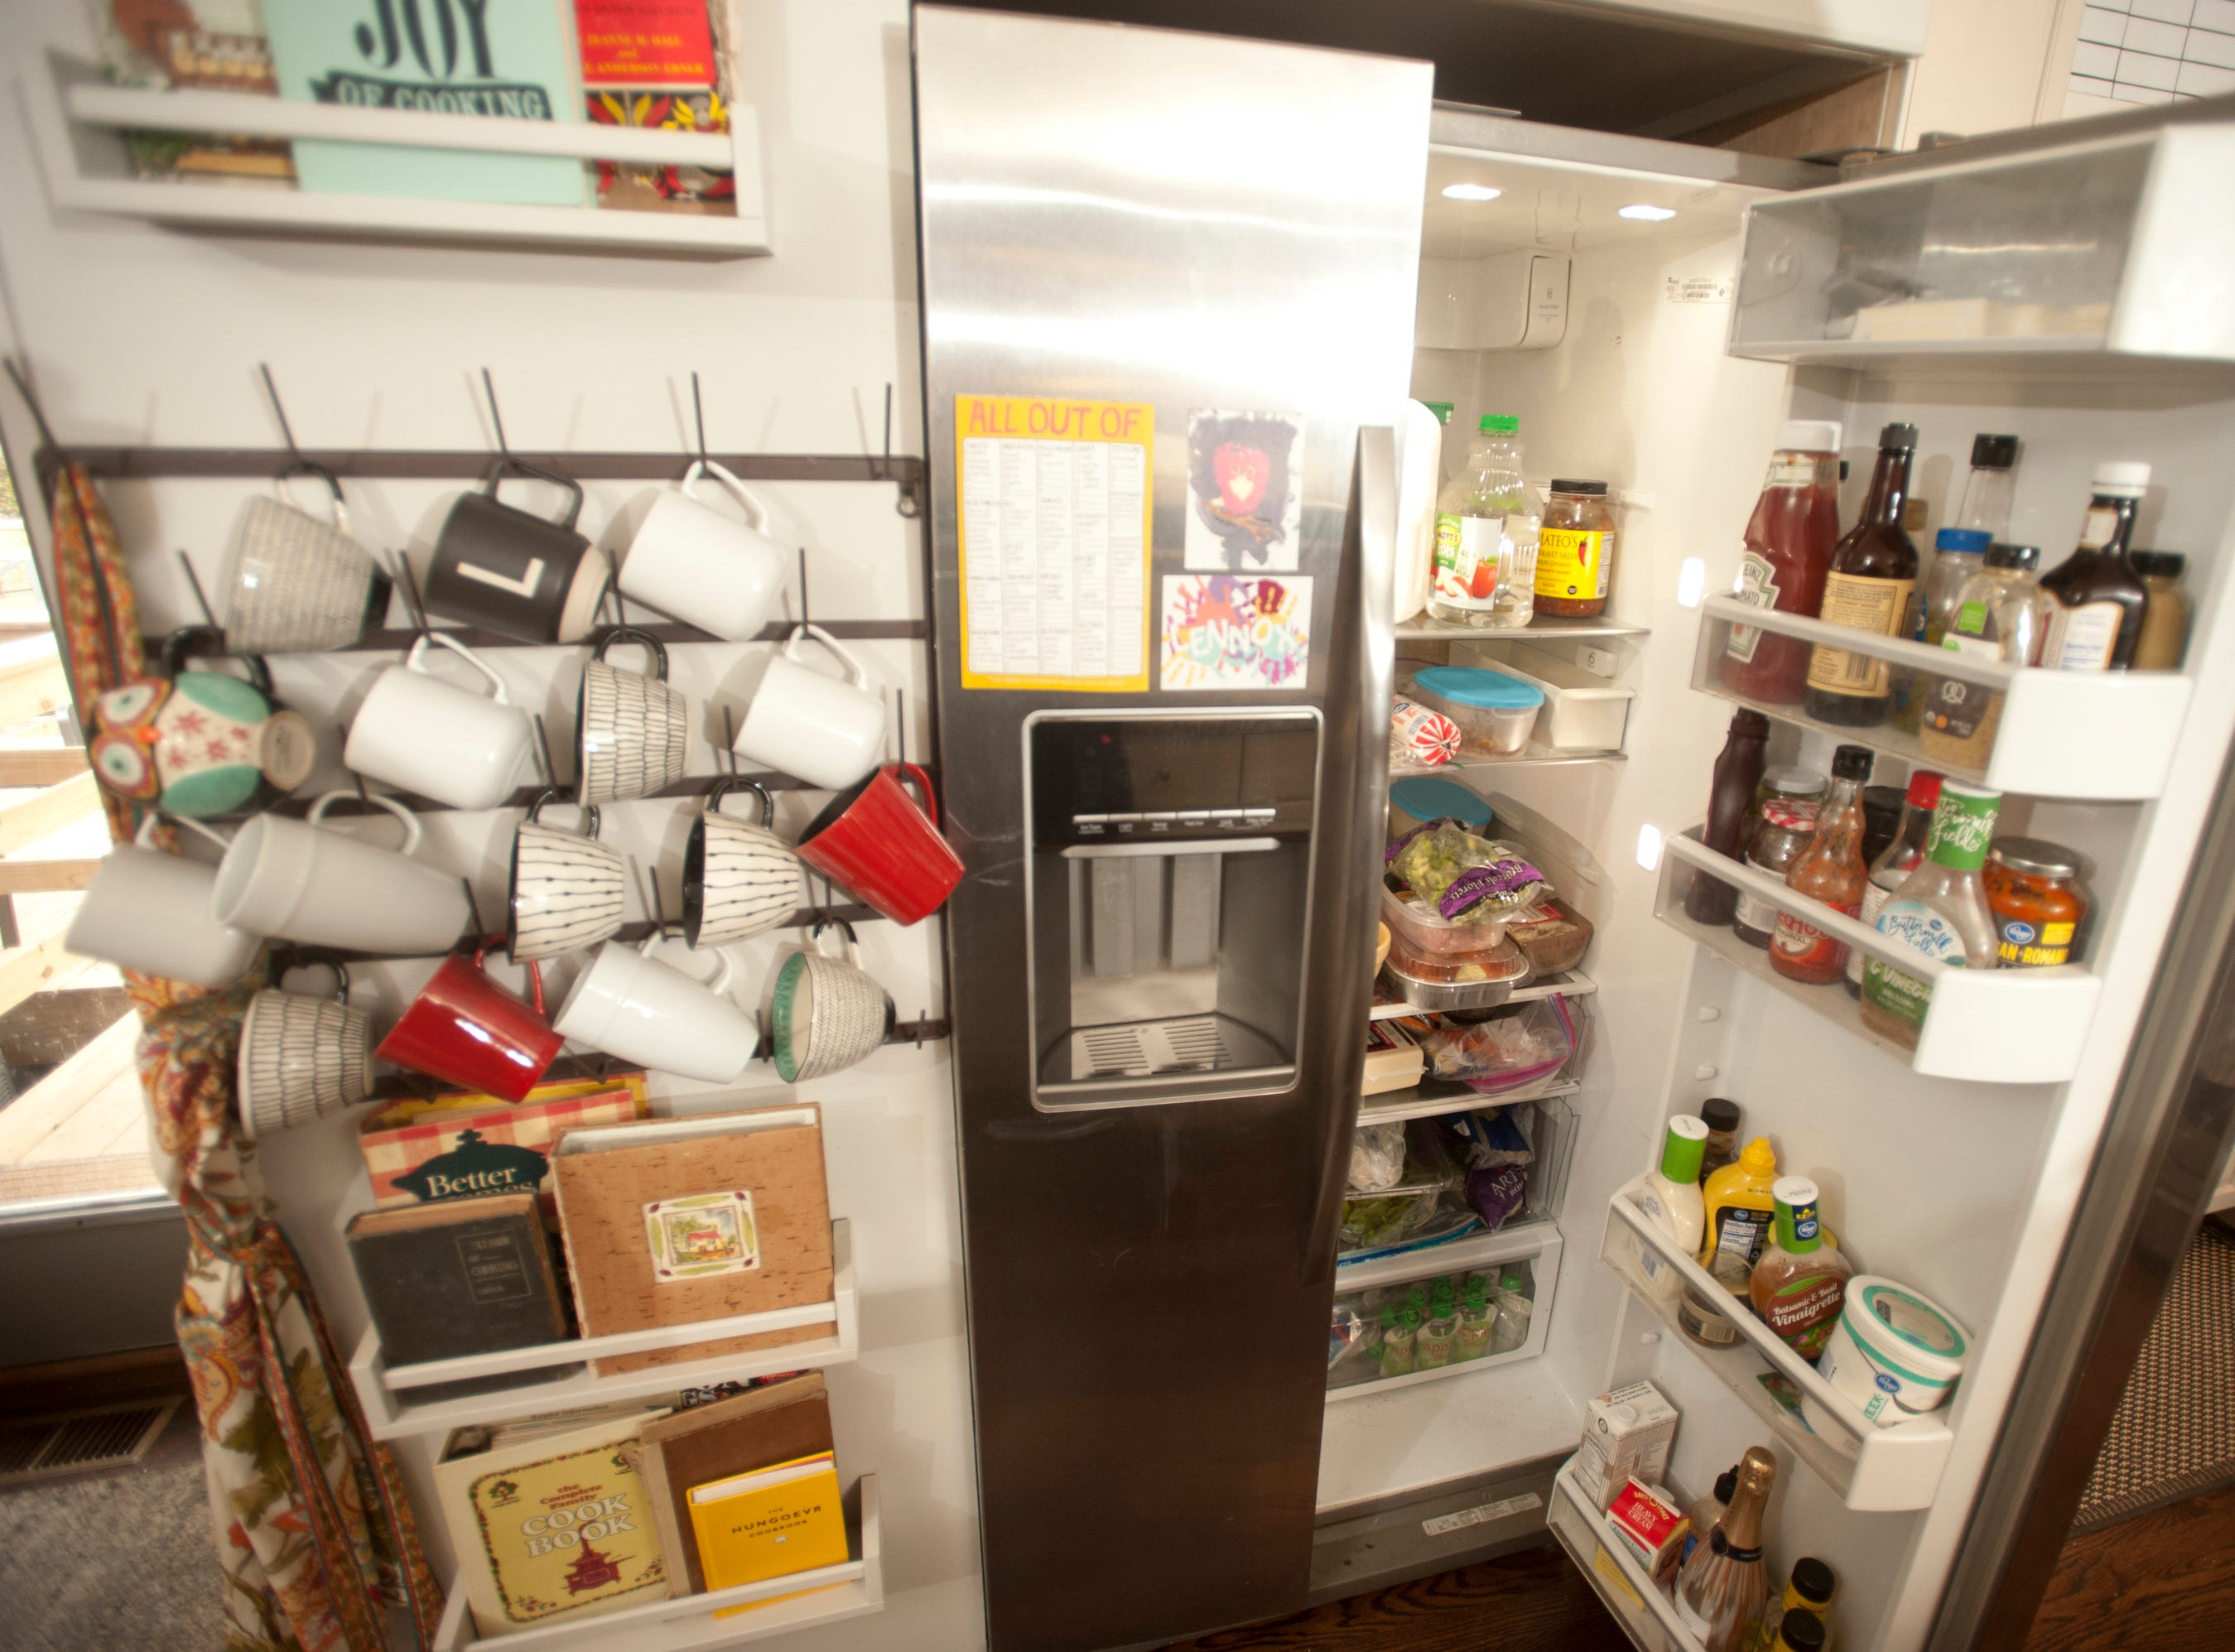 The Squires kitchen includes a wall for cookbooks and cups which stands next to the kitchen refrigerator.